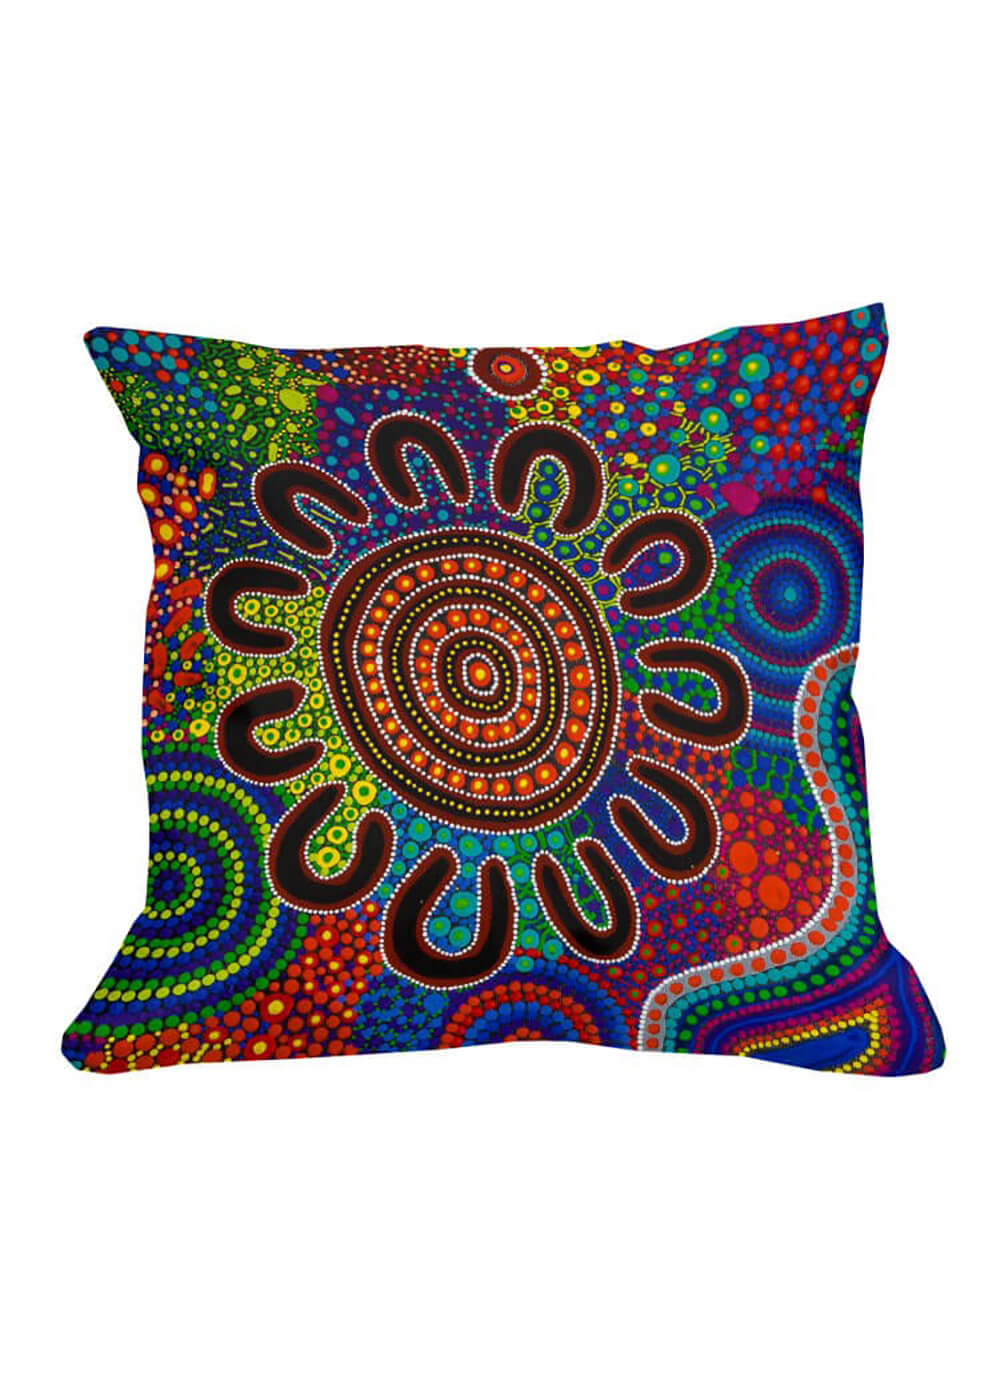 The Power Within - Yarning Circle Cushion Cover